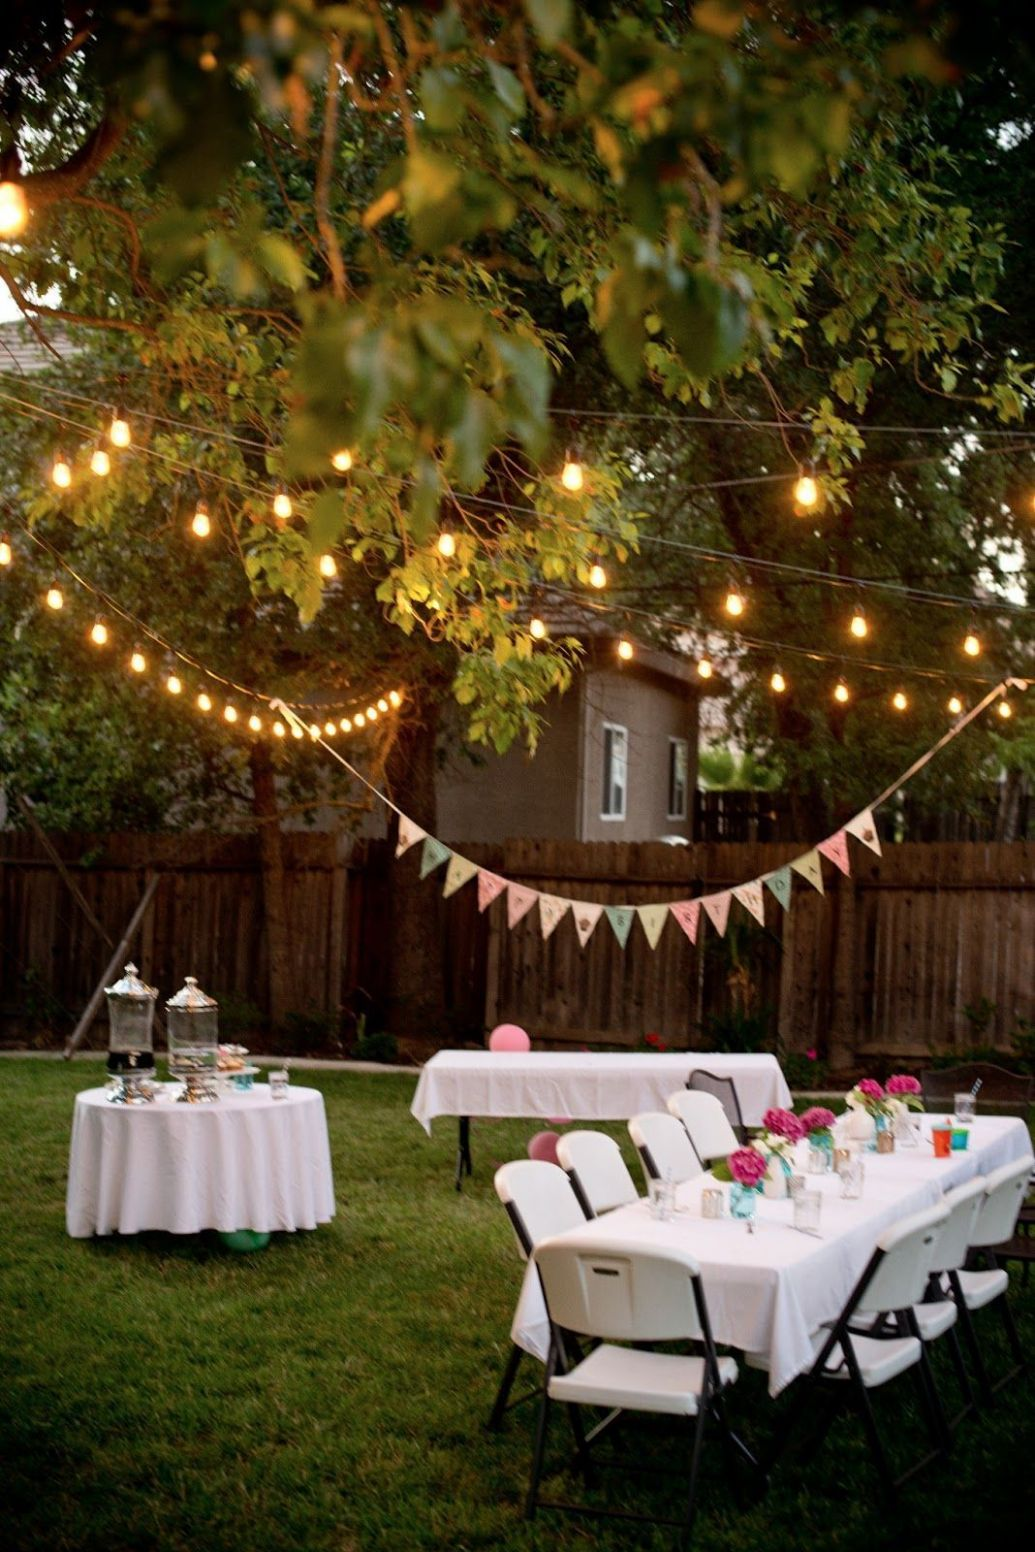 11 Some of the Coolest Concepts of How to Make Diy Backyard Party ..